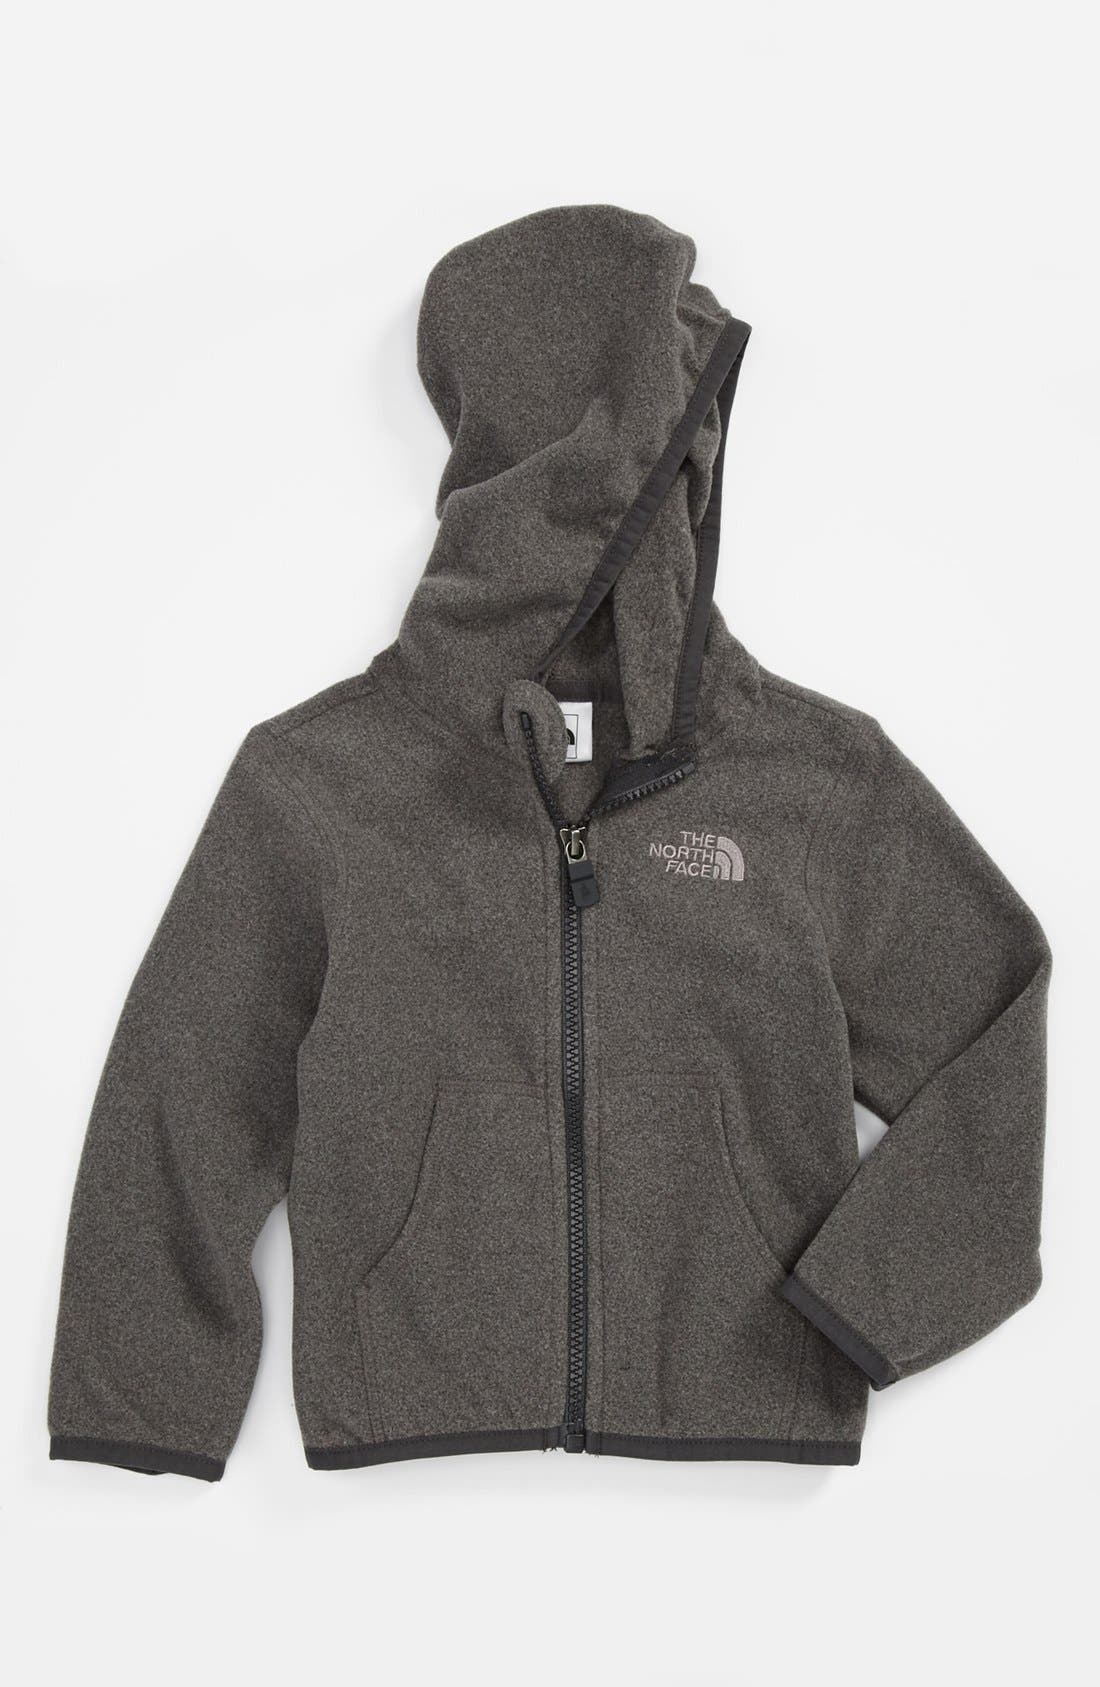 Alternate Image 1 Selected - The North Face 'Glacier' Full Zip Hoodie (Baby)